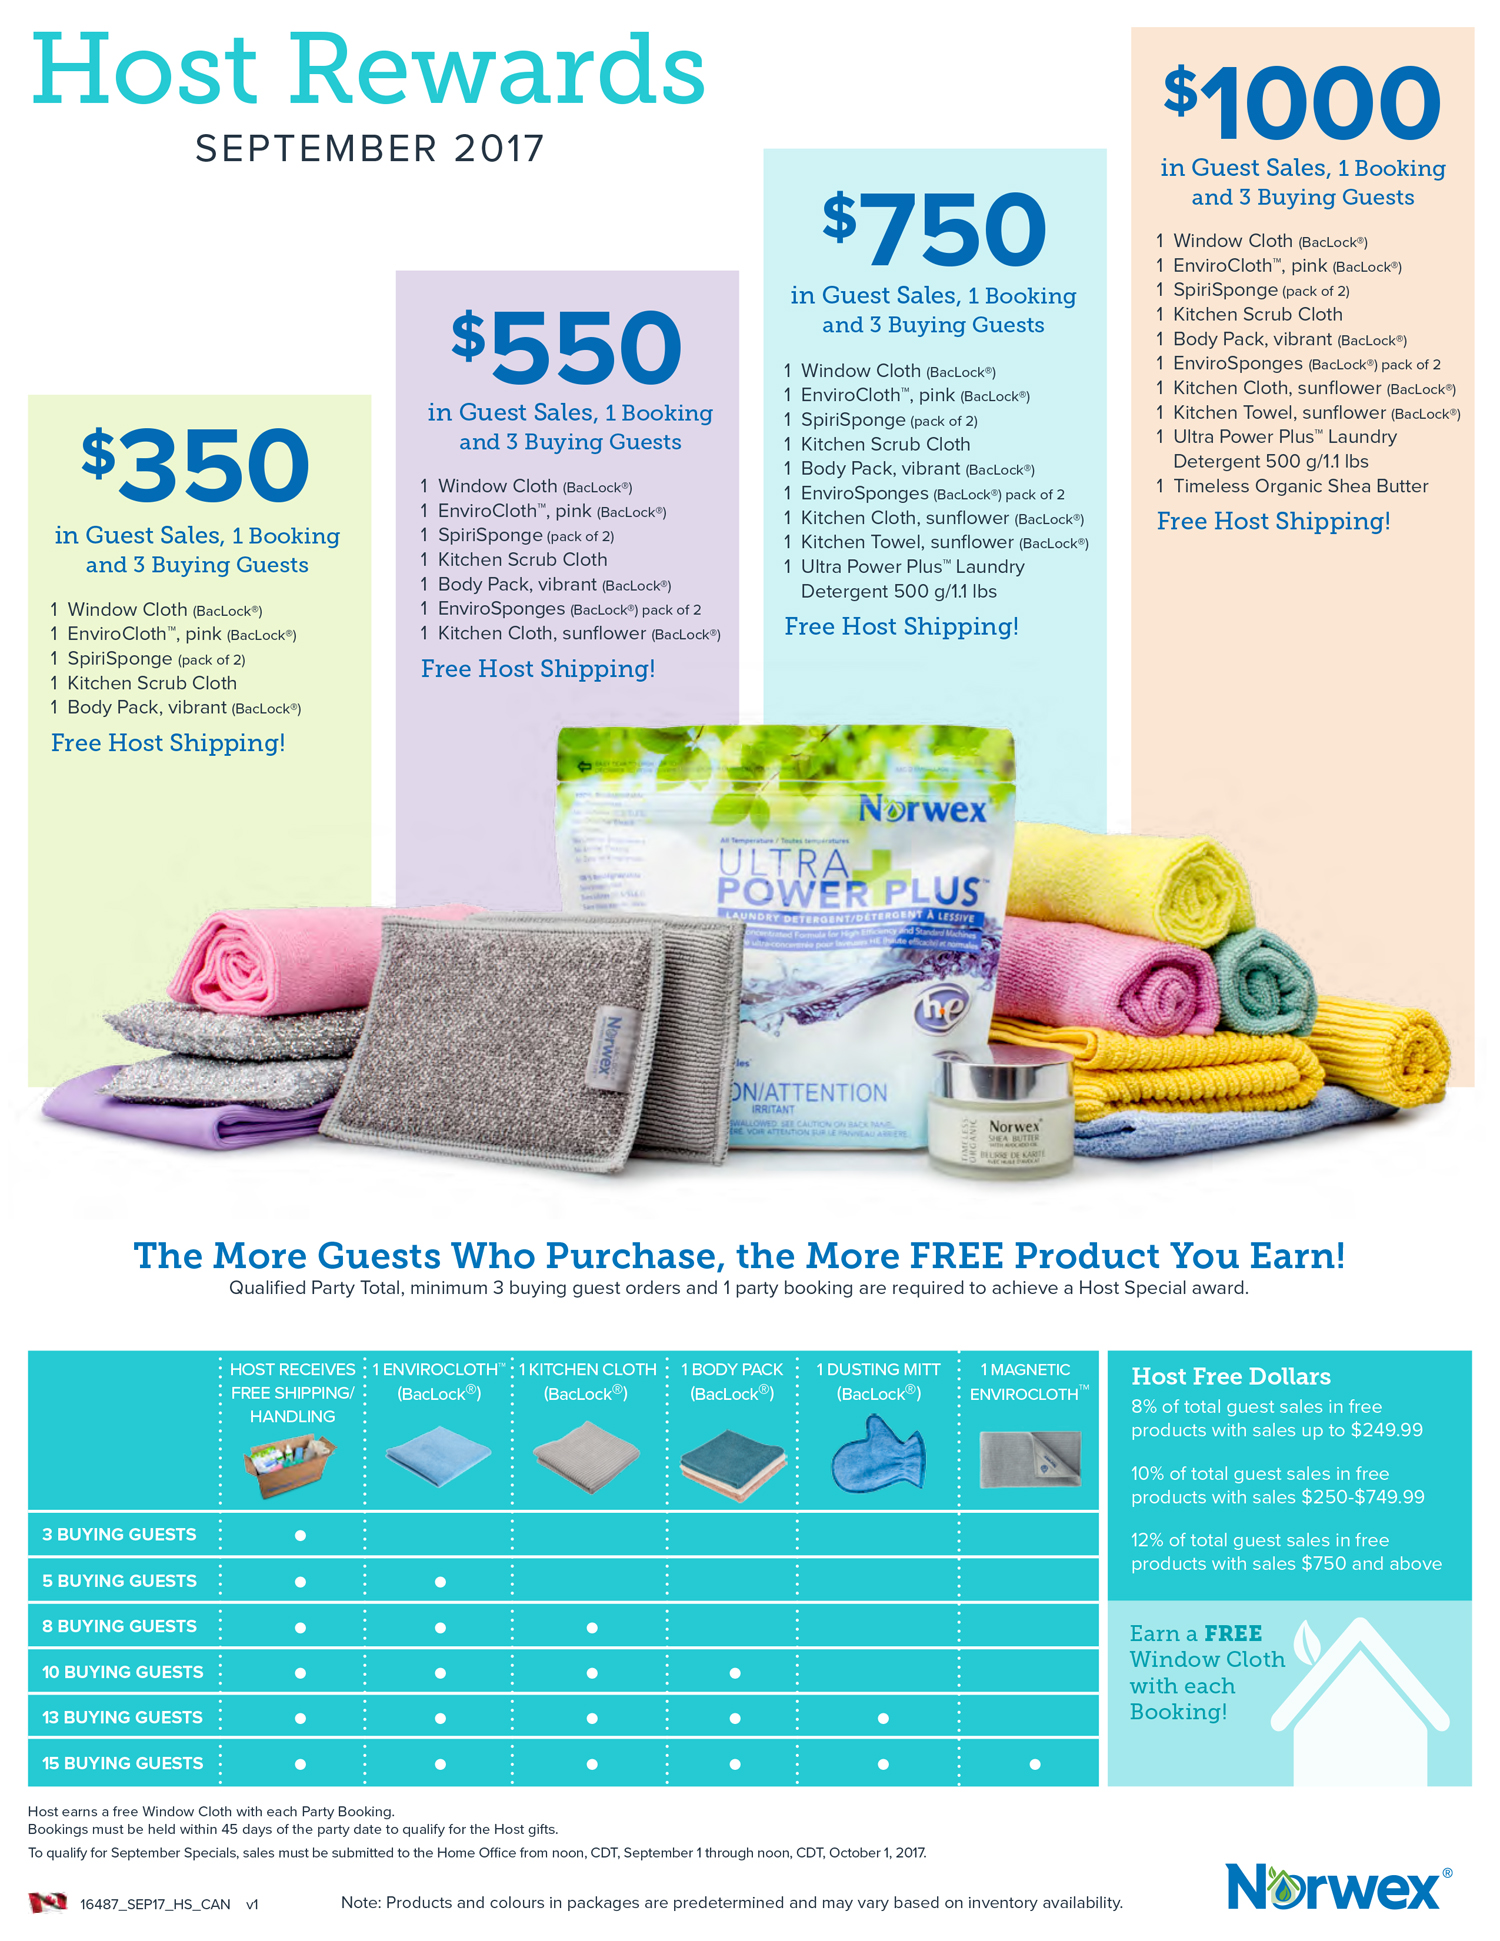 Norwex Host Rewards September 2017